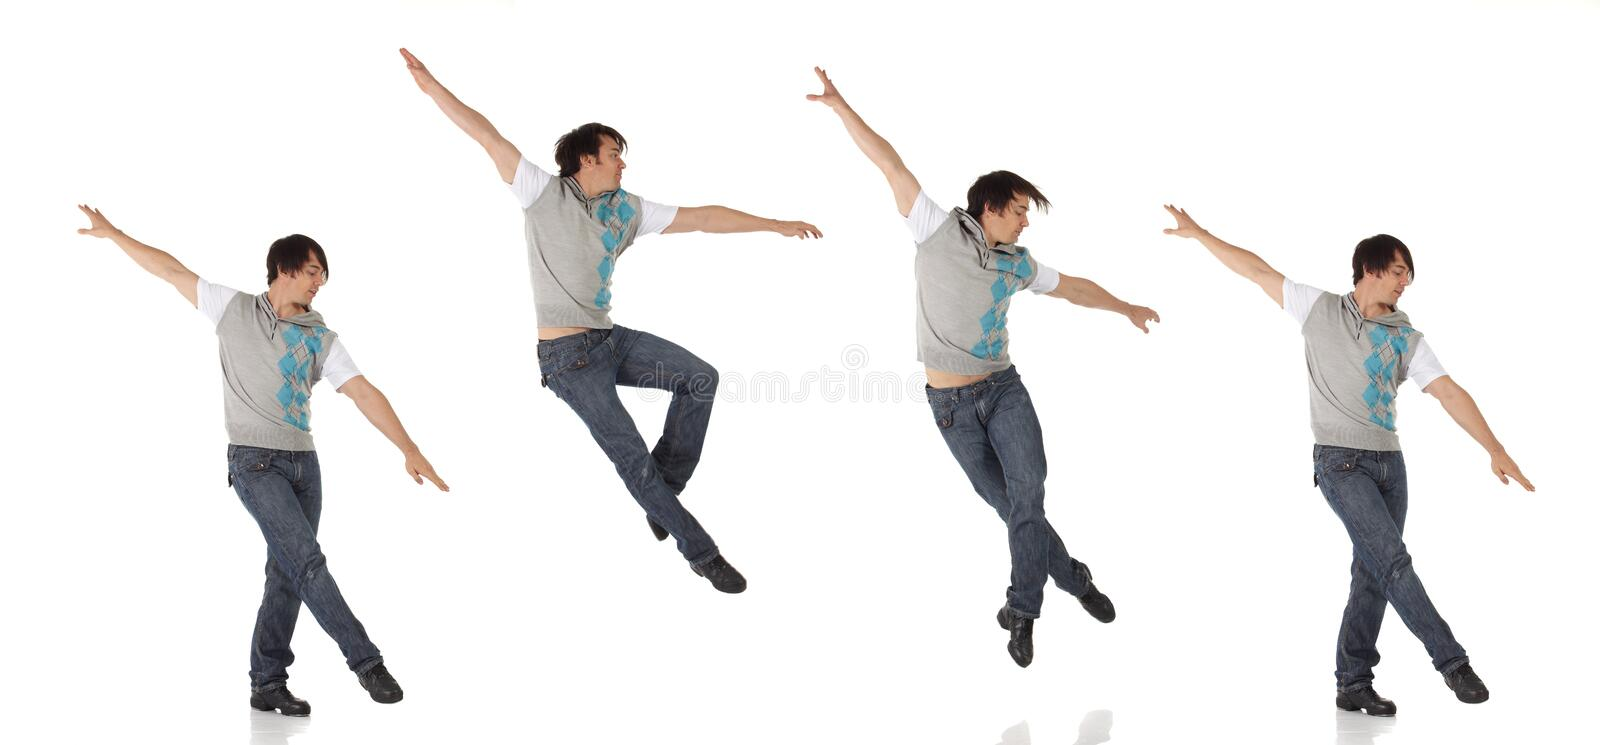 Tap dancer in blue jeans and tap shoes stock photography